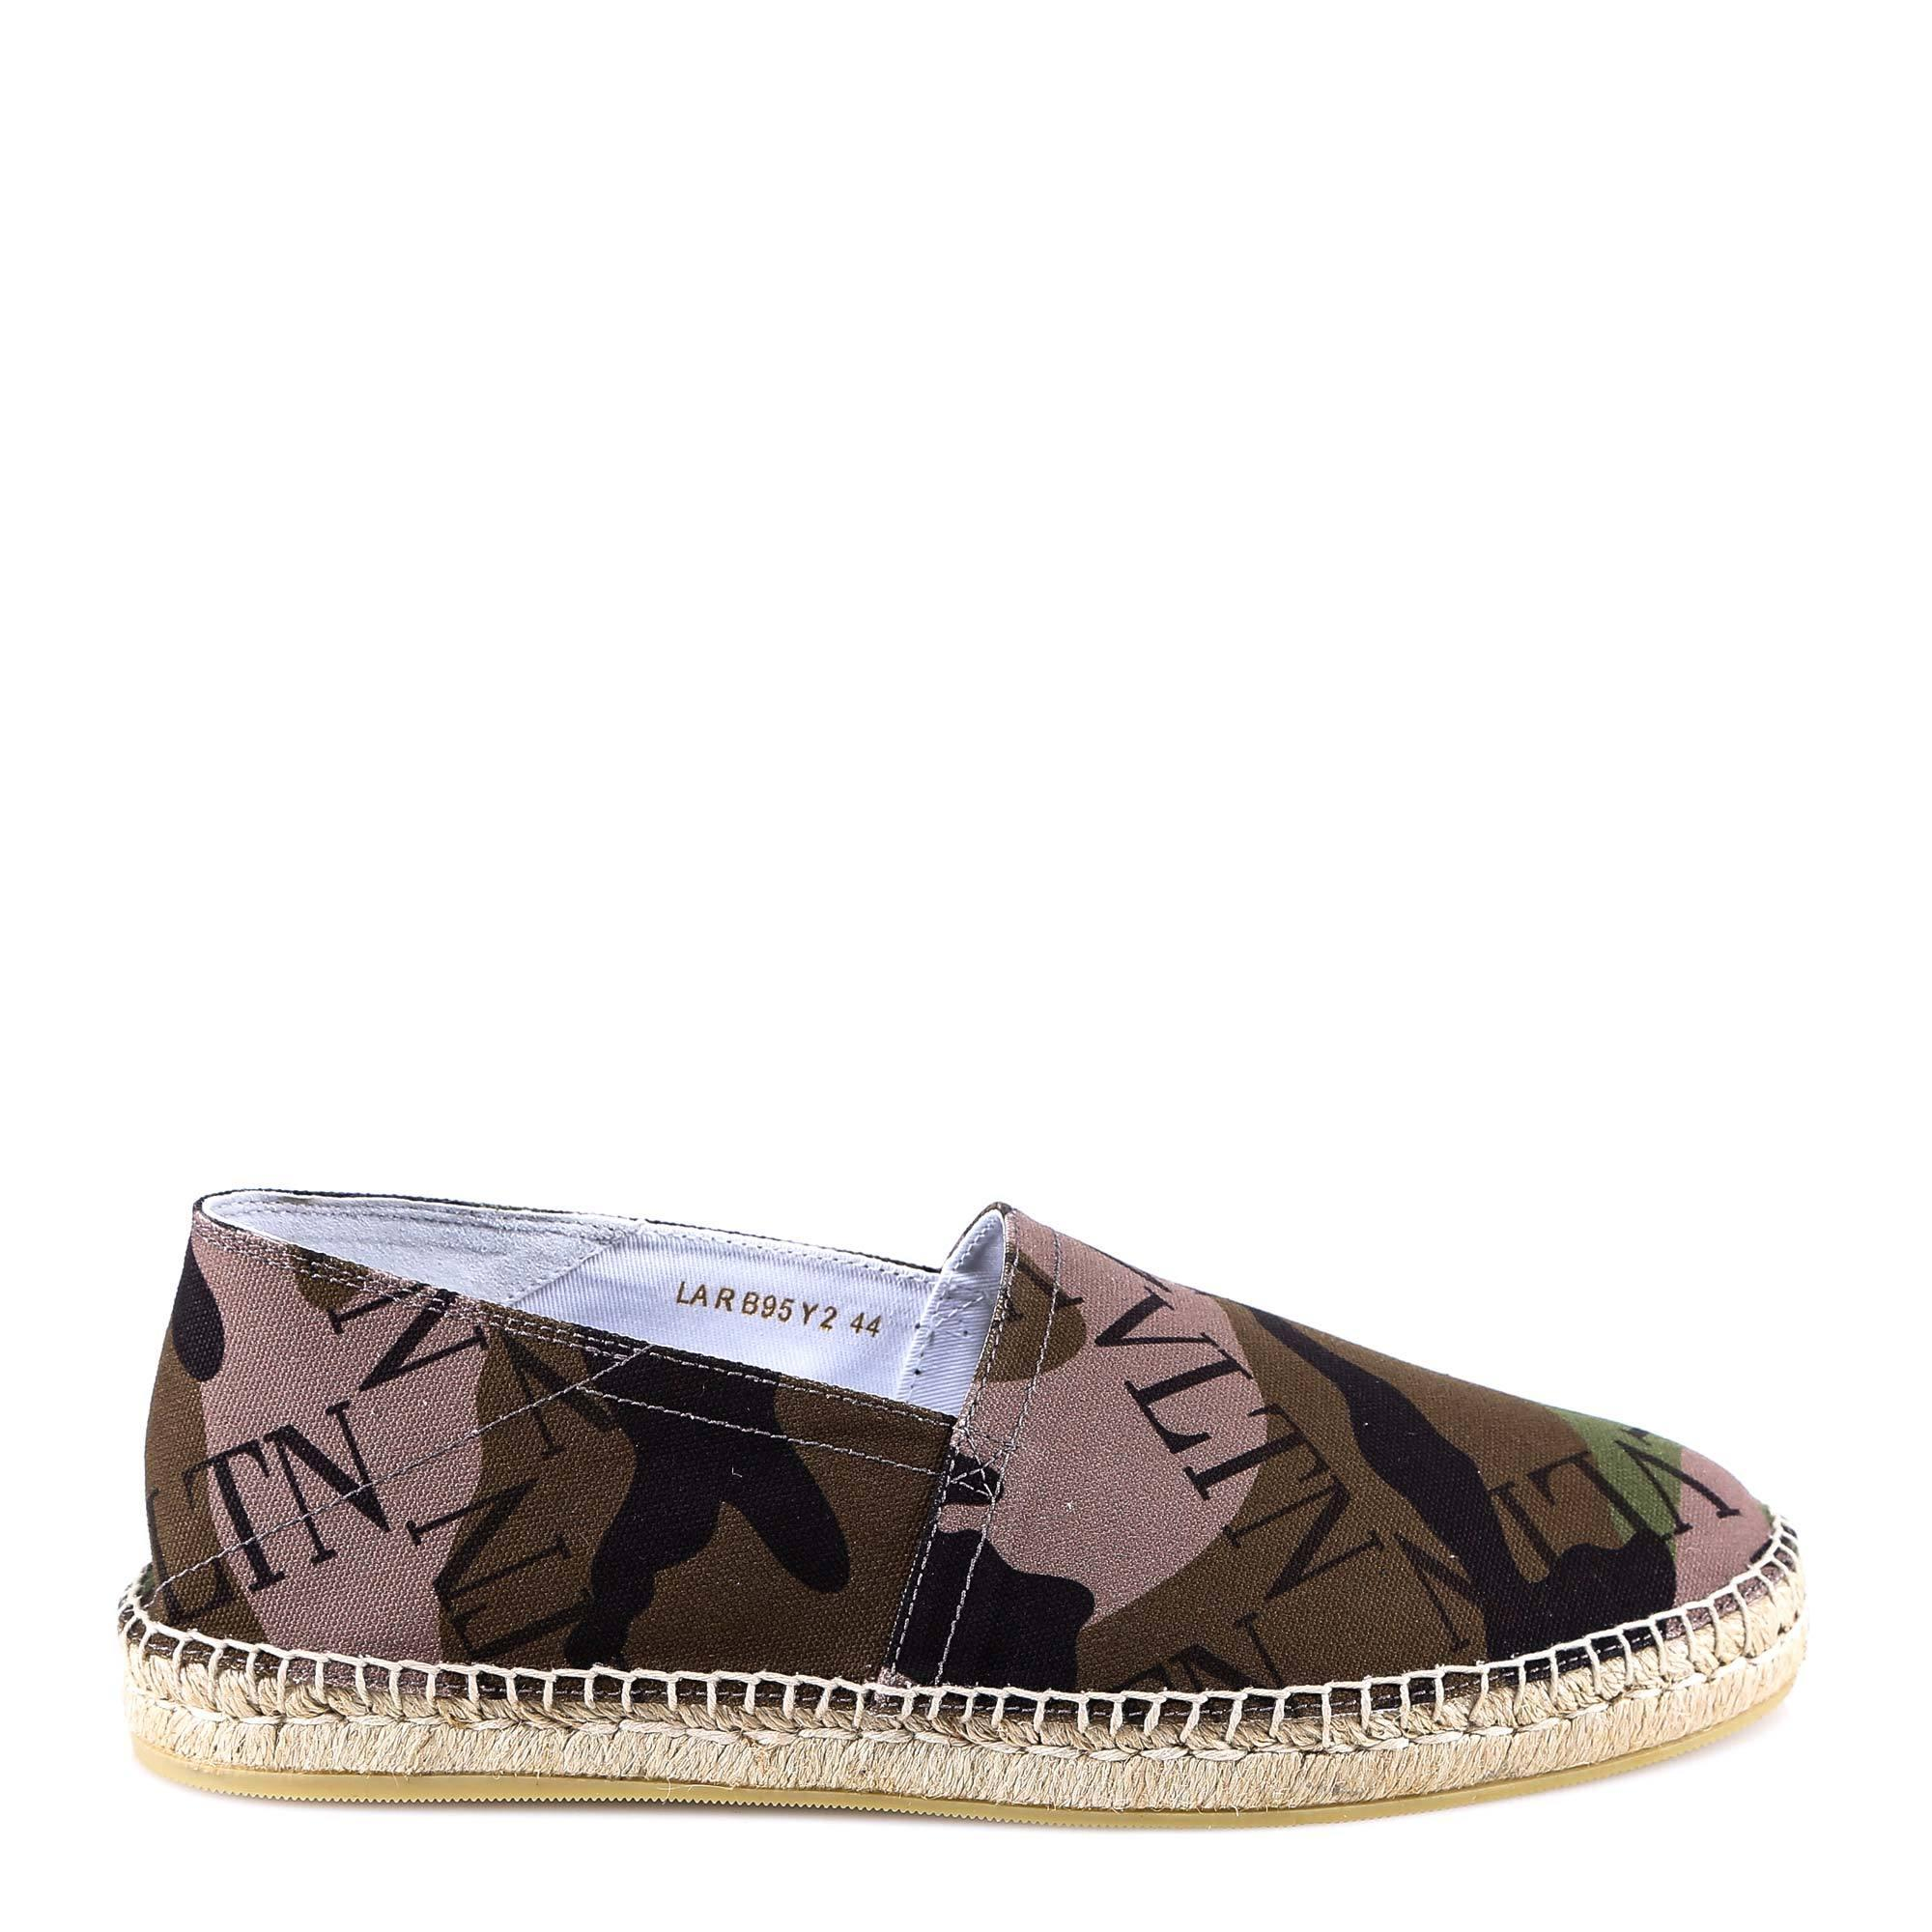 493c19a12d3b2 Valentino Vltn Grid Espadrilles in Brown for Men - Lyst